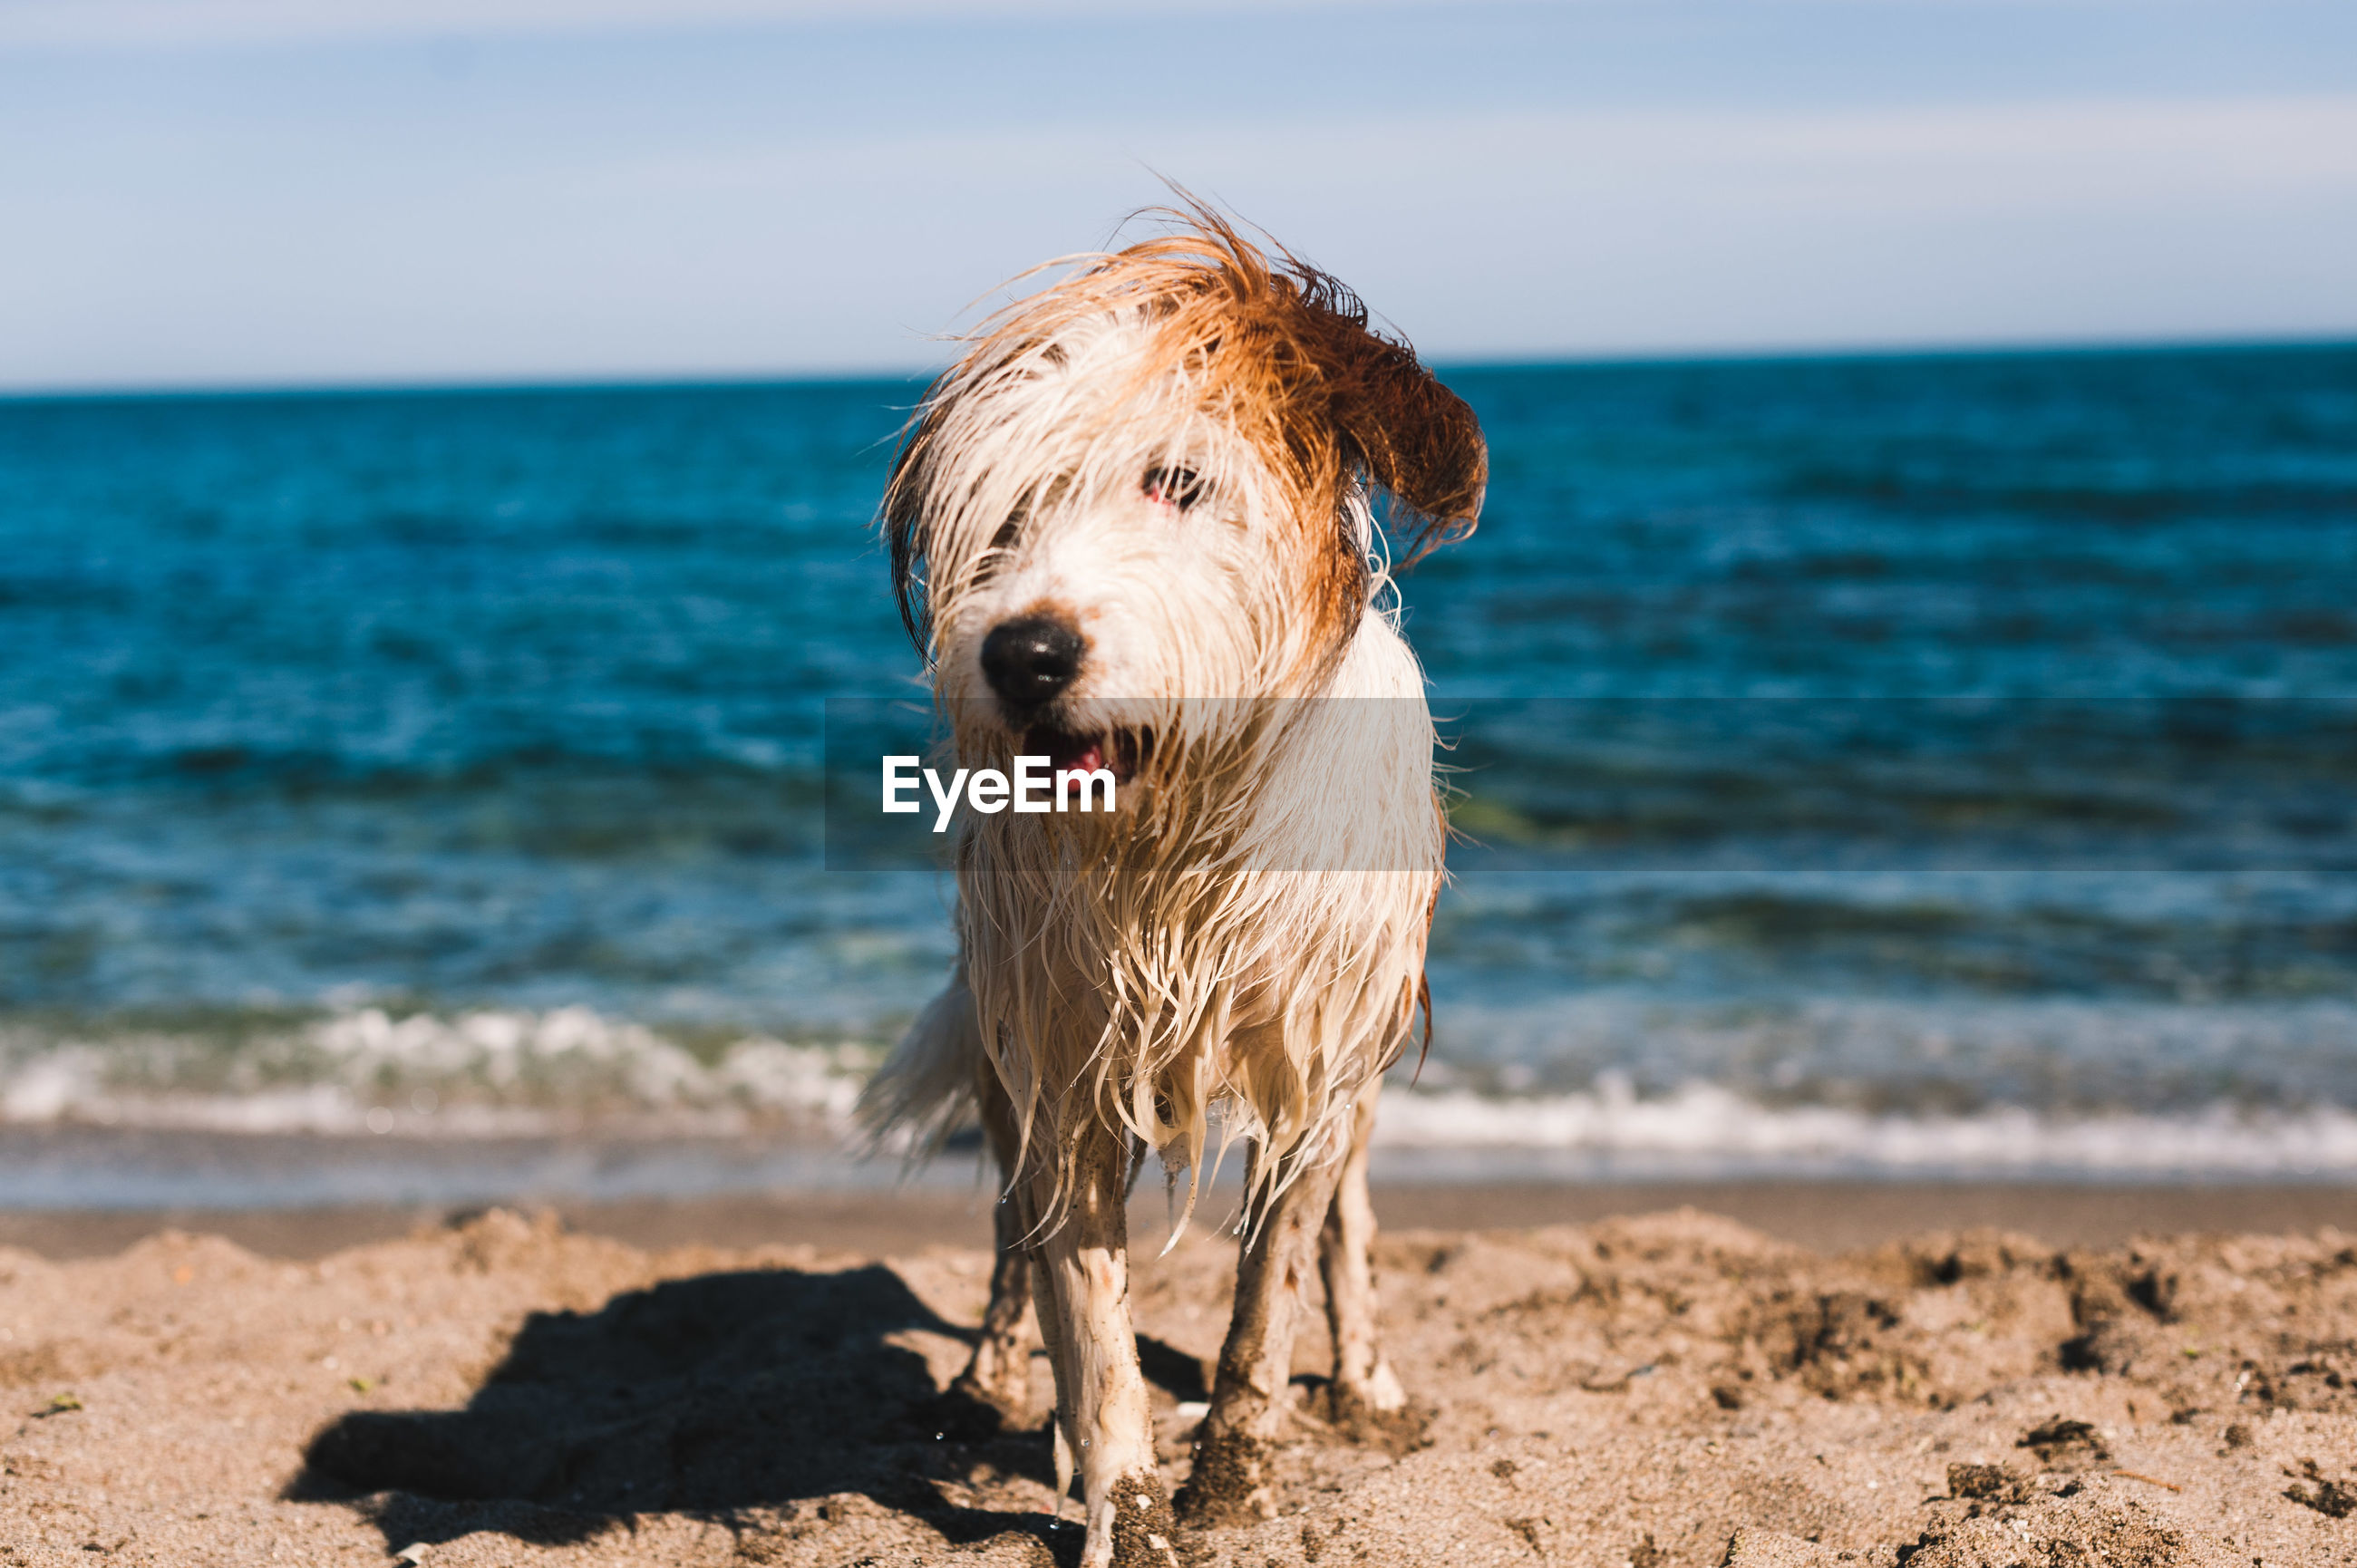 Hairy dog standing on shore at beach